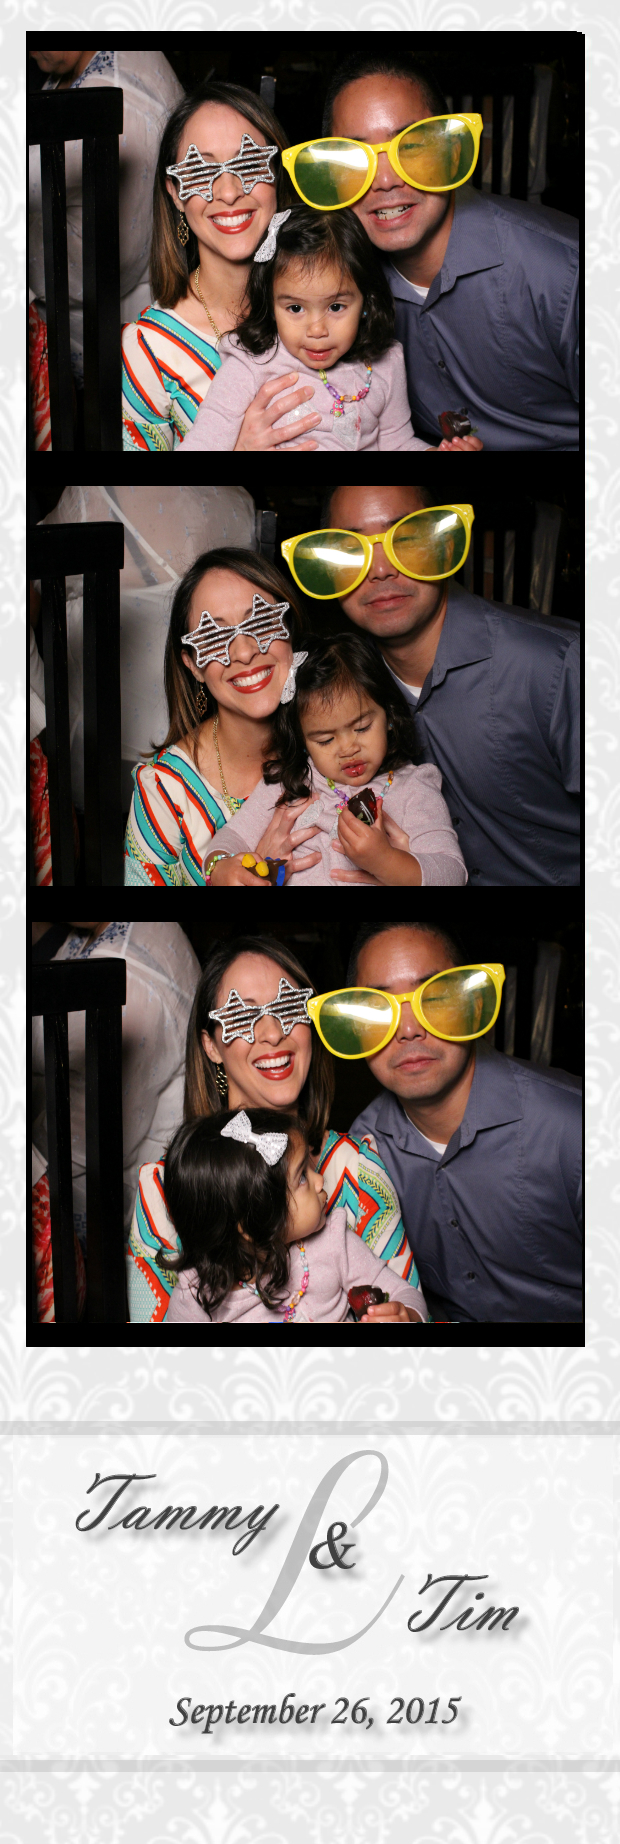 Guest House Events Photo Booth Strips T&T (13).jpg